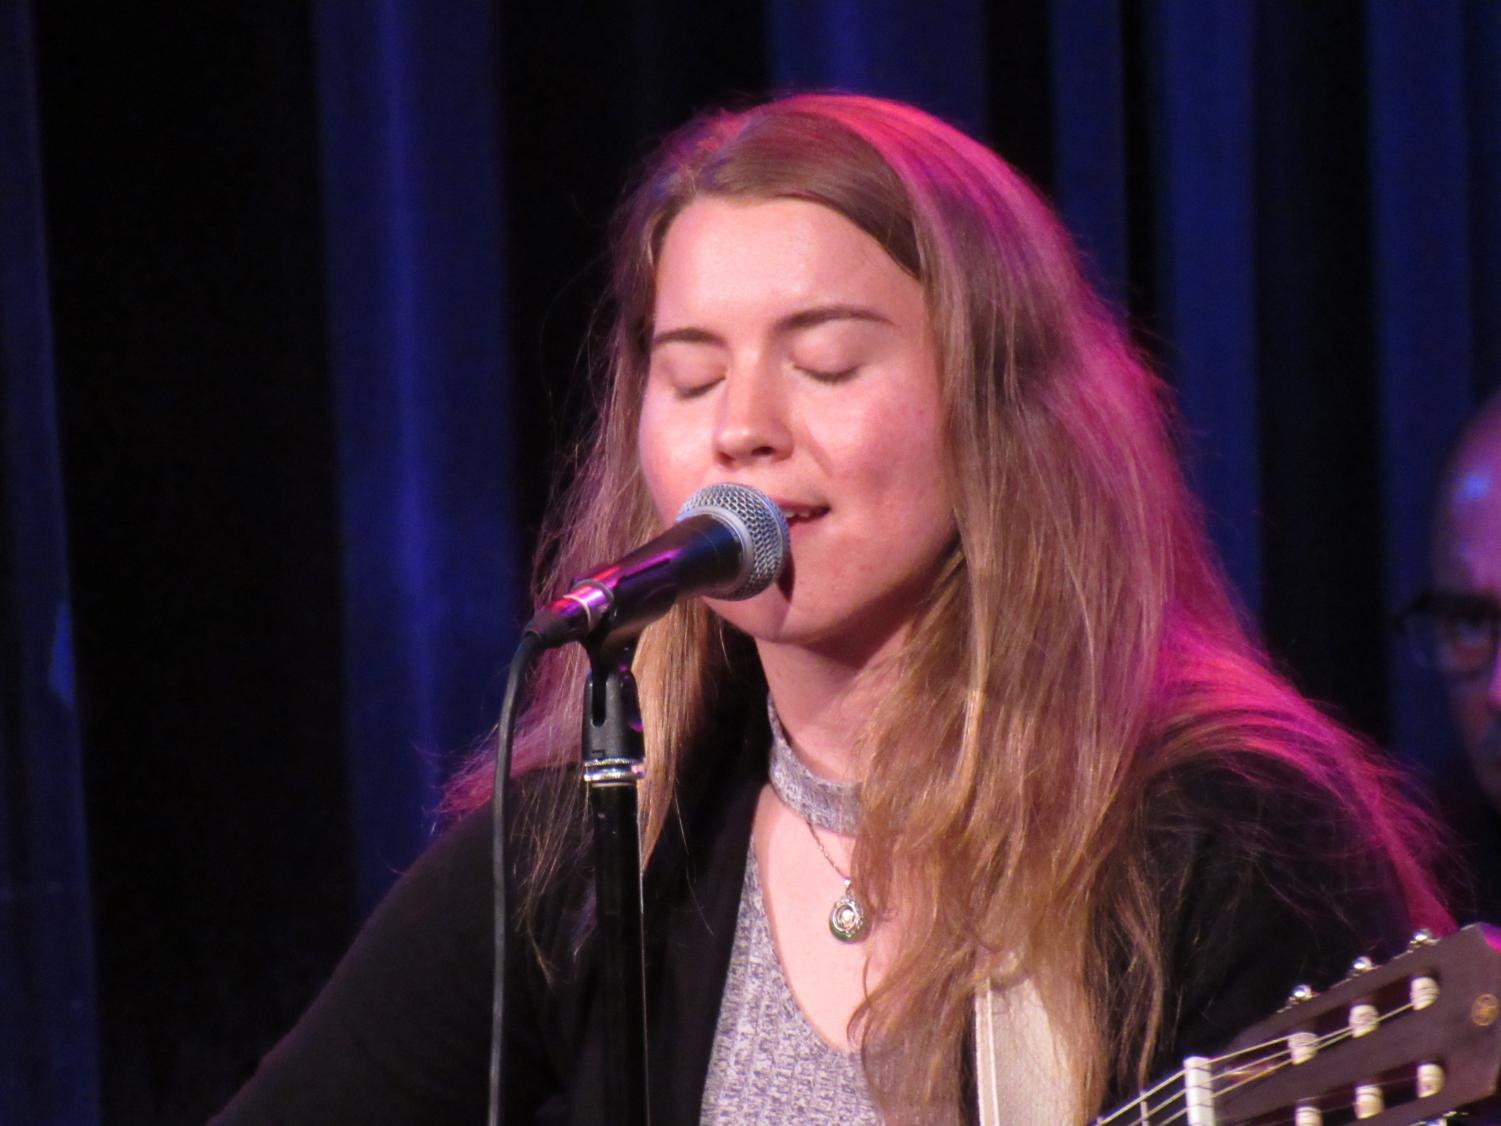 An+alumni+of+Chico+High+and+Chico+State%2C+Roxanne+Winslow%2C+combined+a+simple+acoustic+song+with+offbeat%2C+soaring+vocals.+Photo+credit%3A+Natalie+Hanson